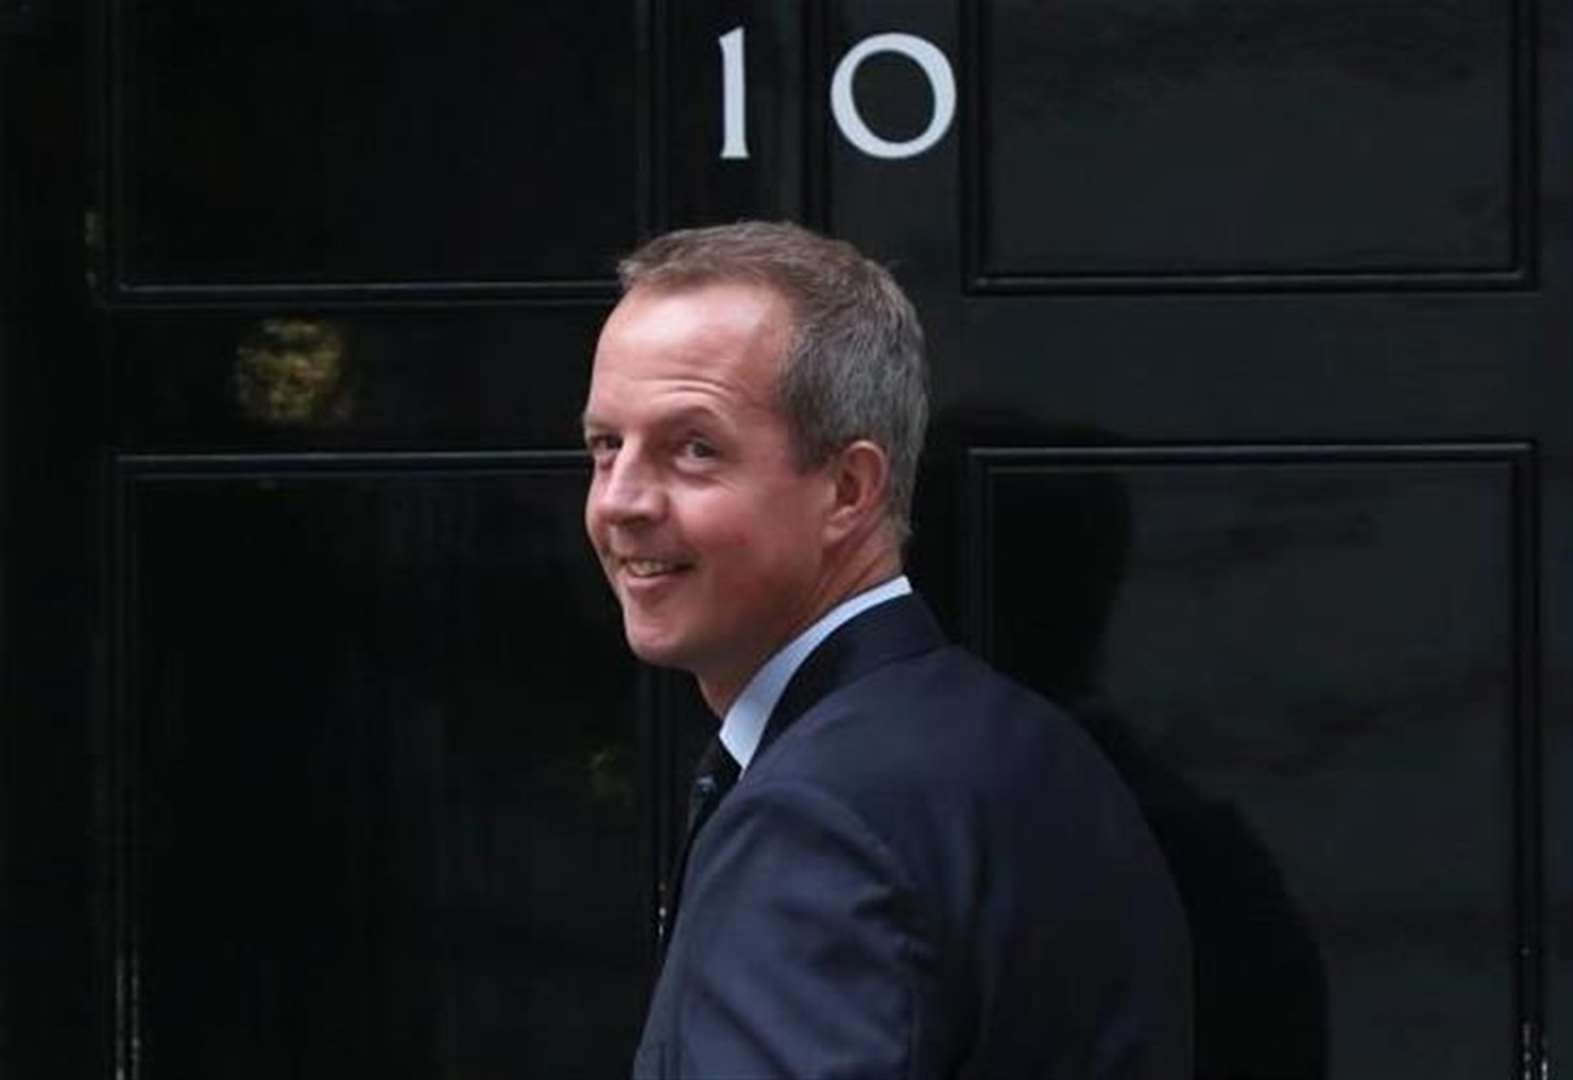 Stamford MP Nick Boles confirms his departure from Parliament